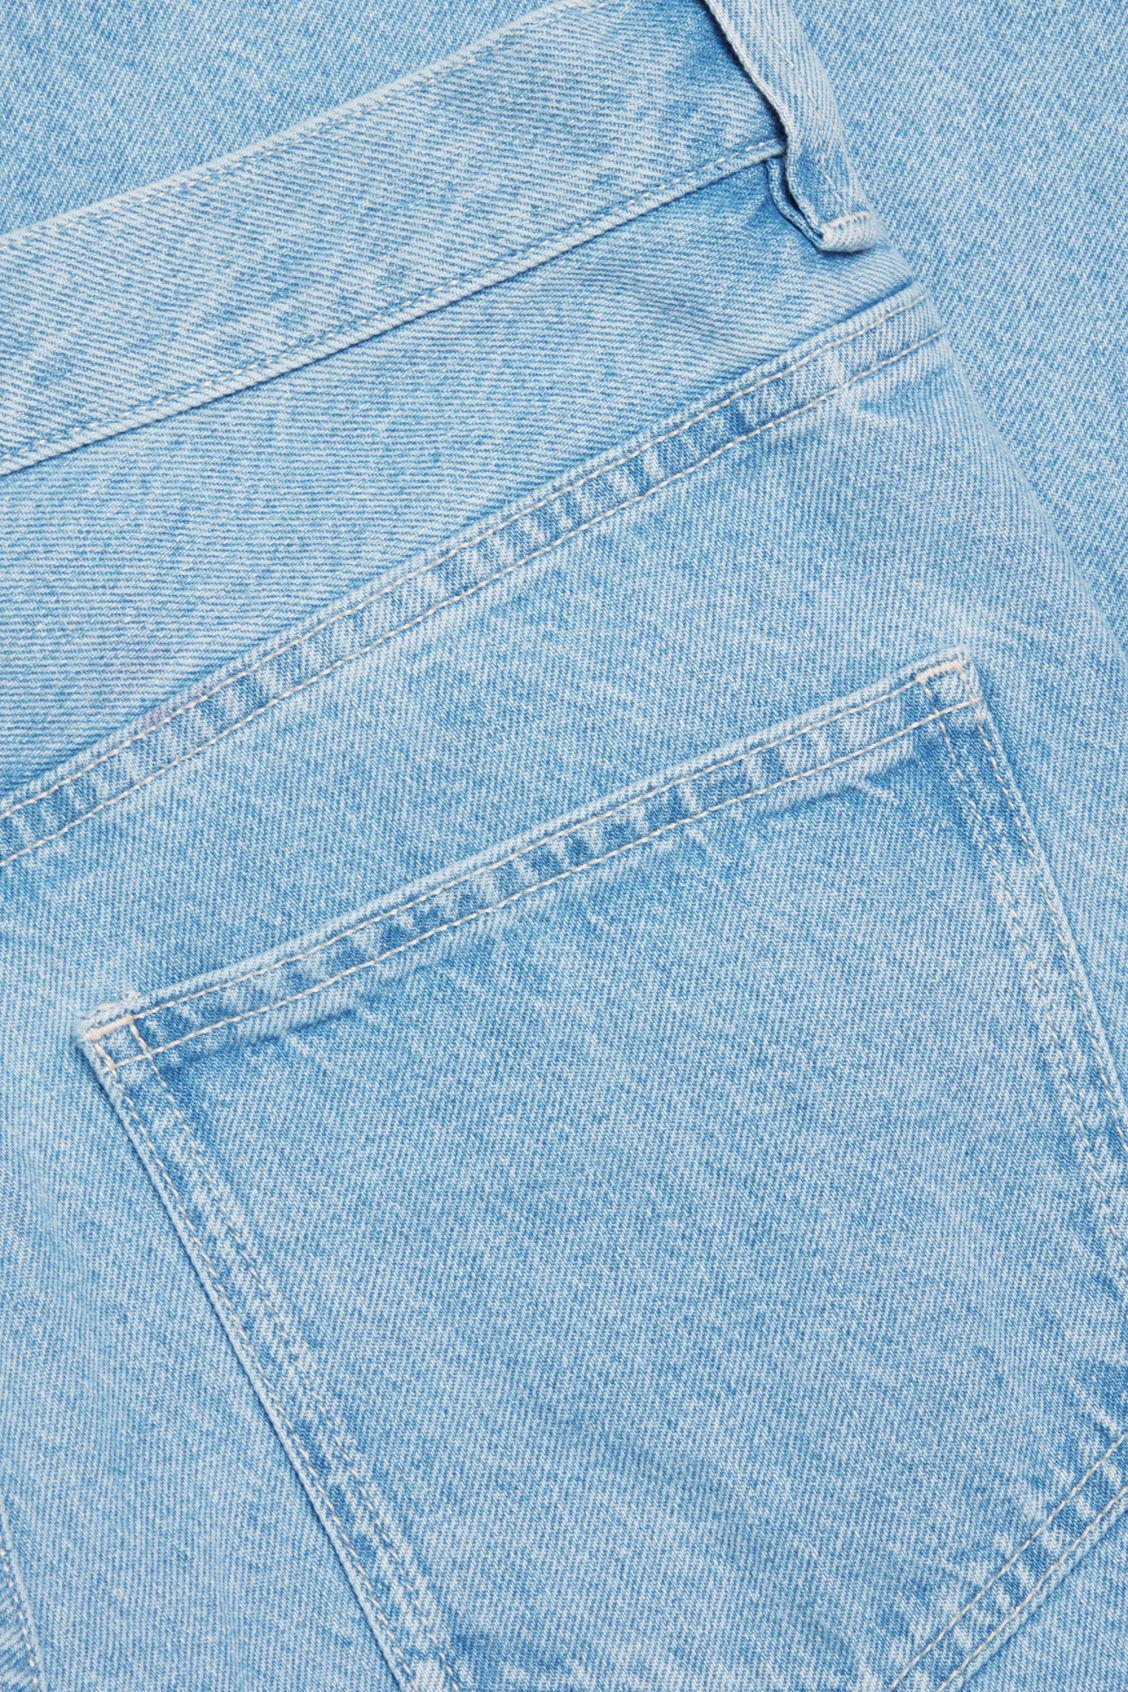 STRAIGHT MID-RISE JEANS 8